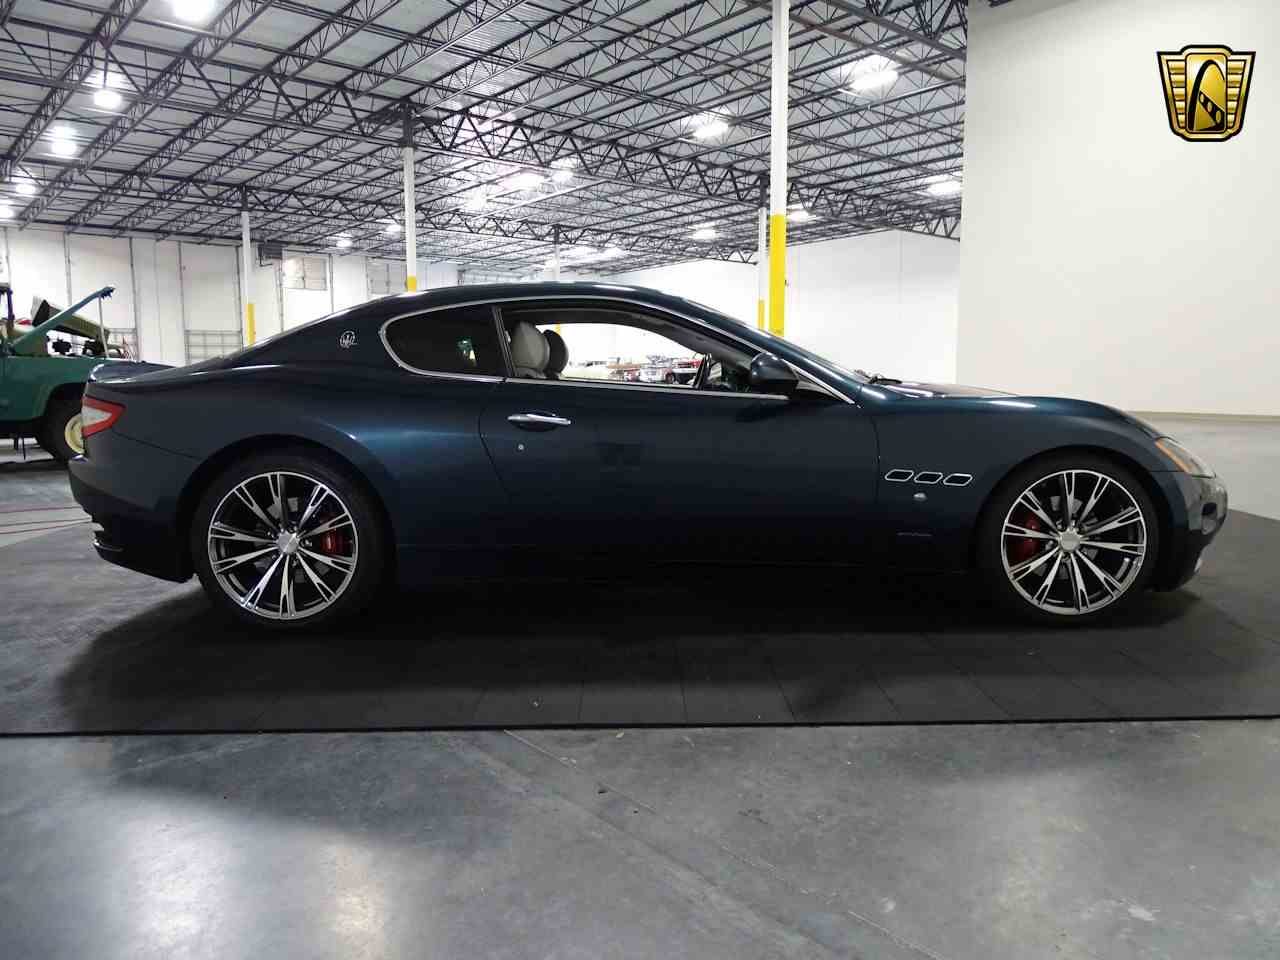 Large Picture of '08 Maserati GranTurismo located in Texas Offered by Gateway Classic Cars - Houston - MO4H